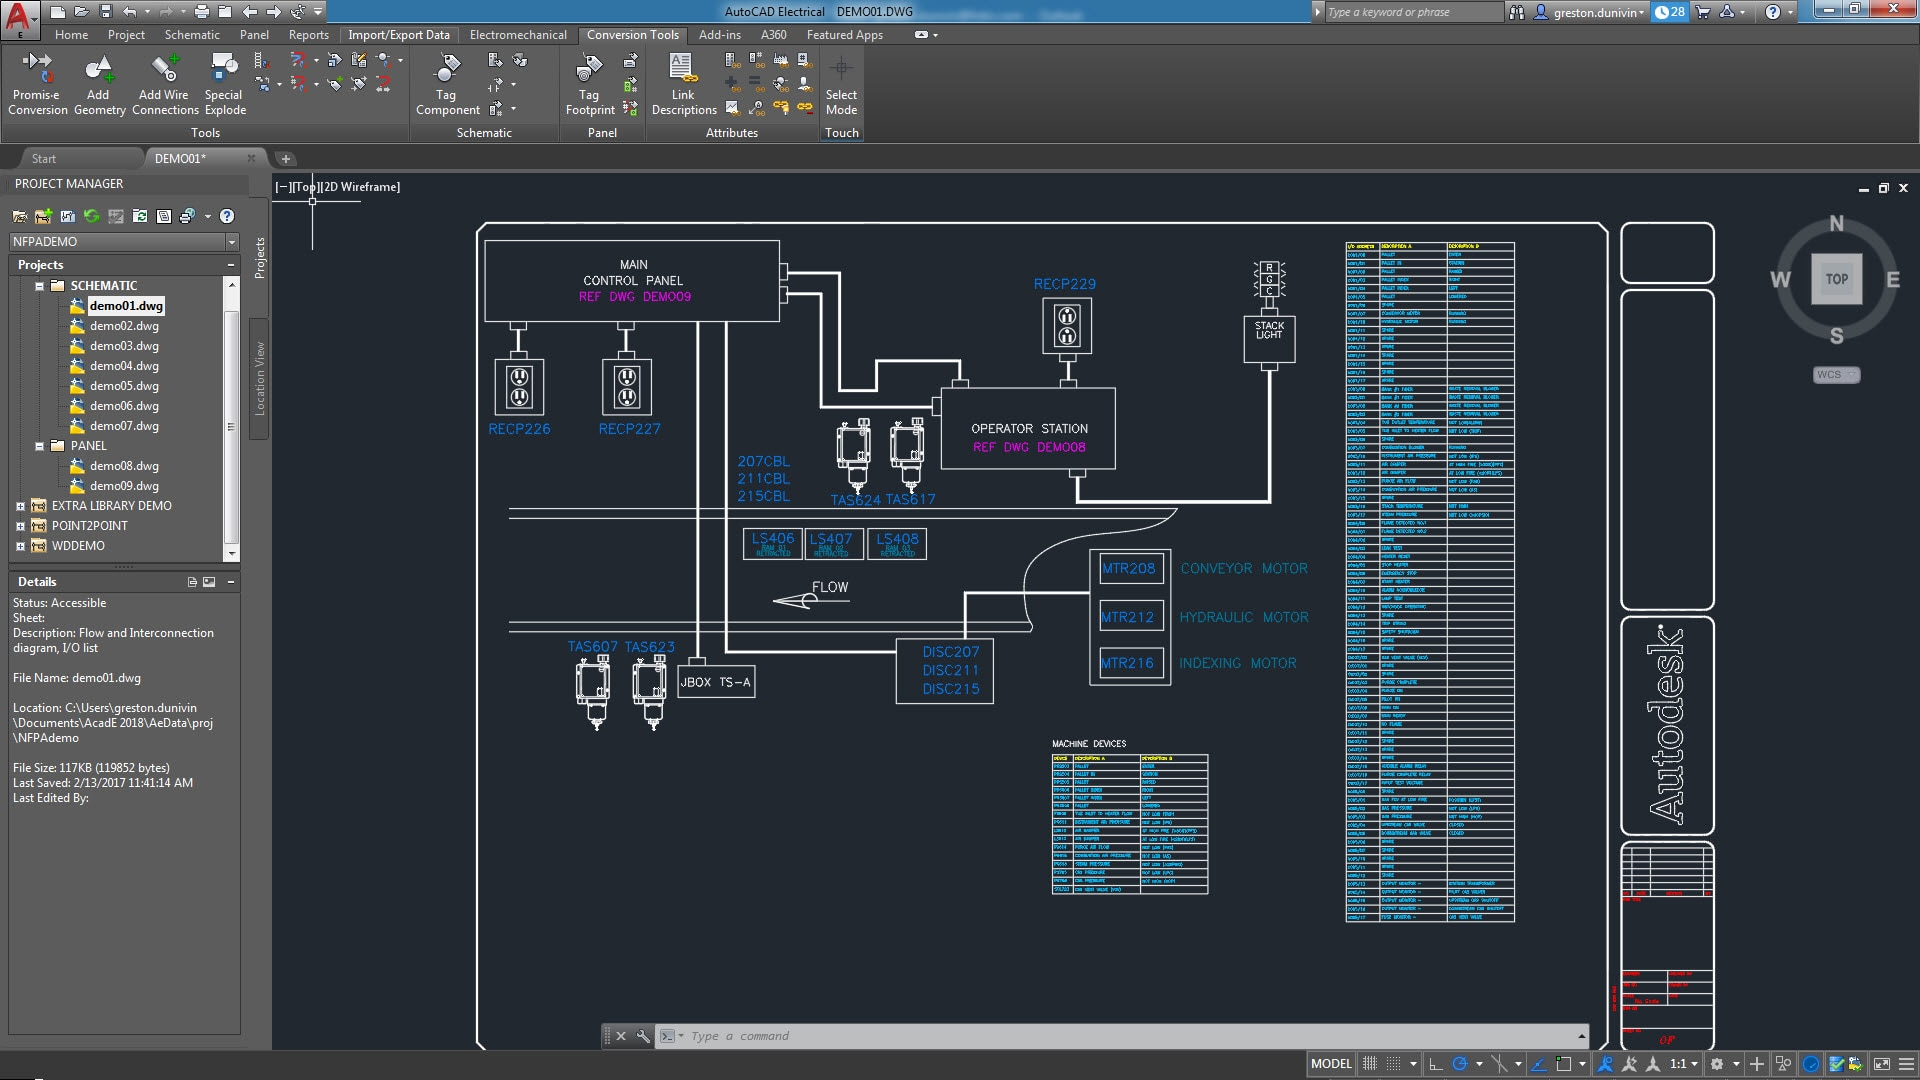 Autocad Electrical Toolset Design Software House Wiring Symbols The Enables Customer And Supplier Collaboration